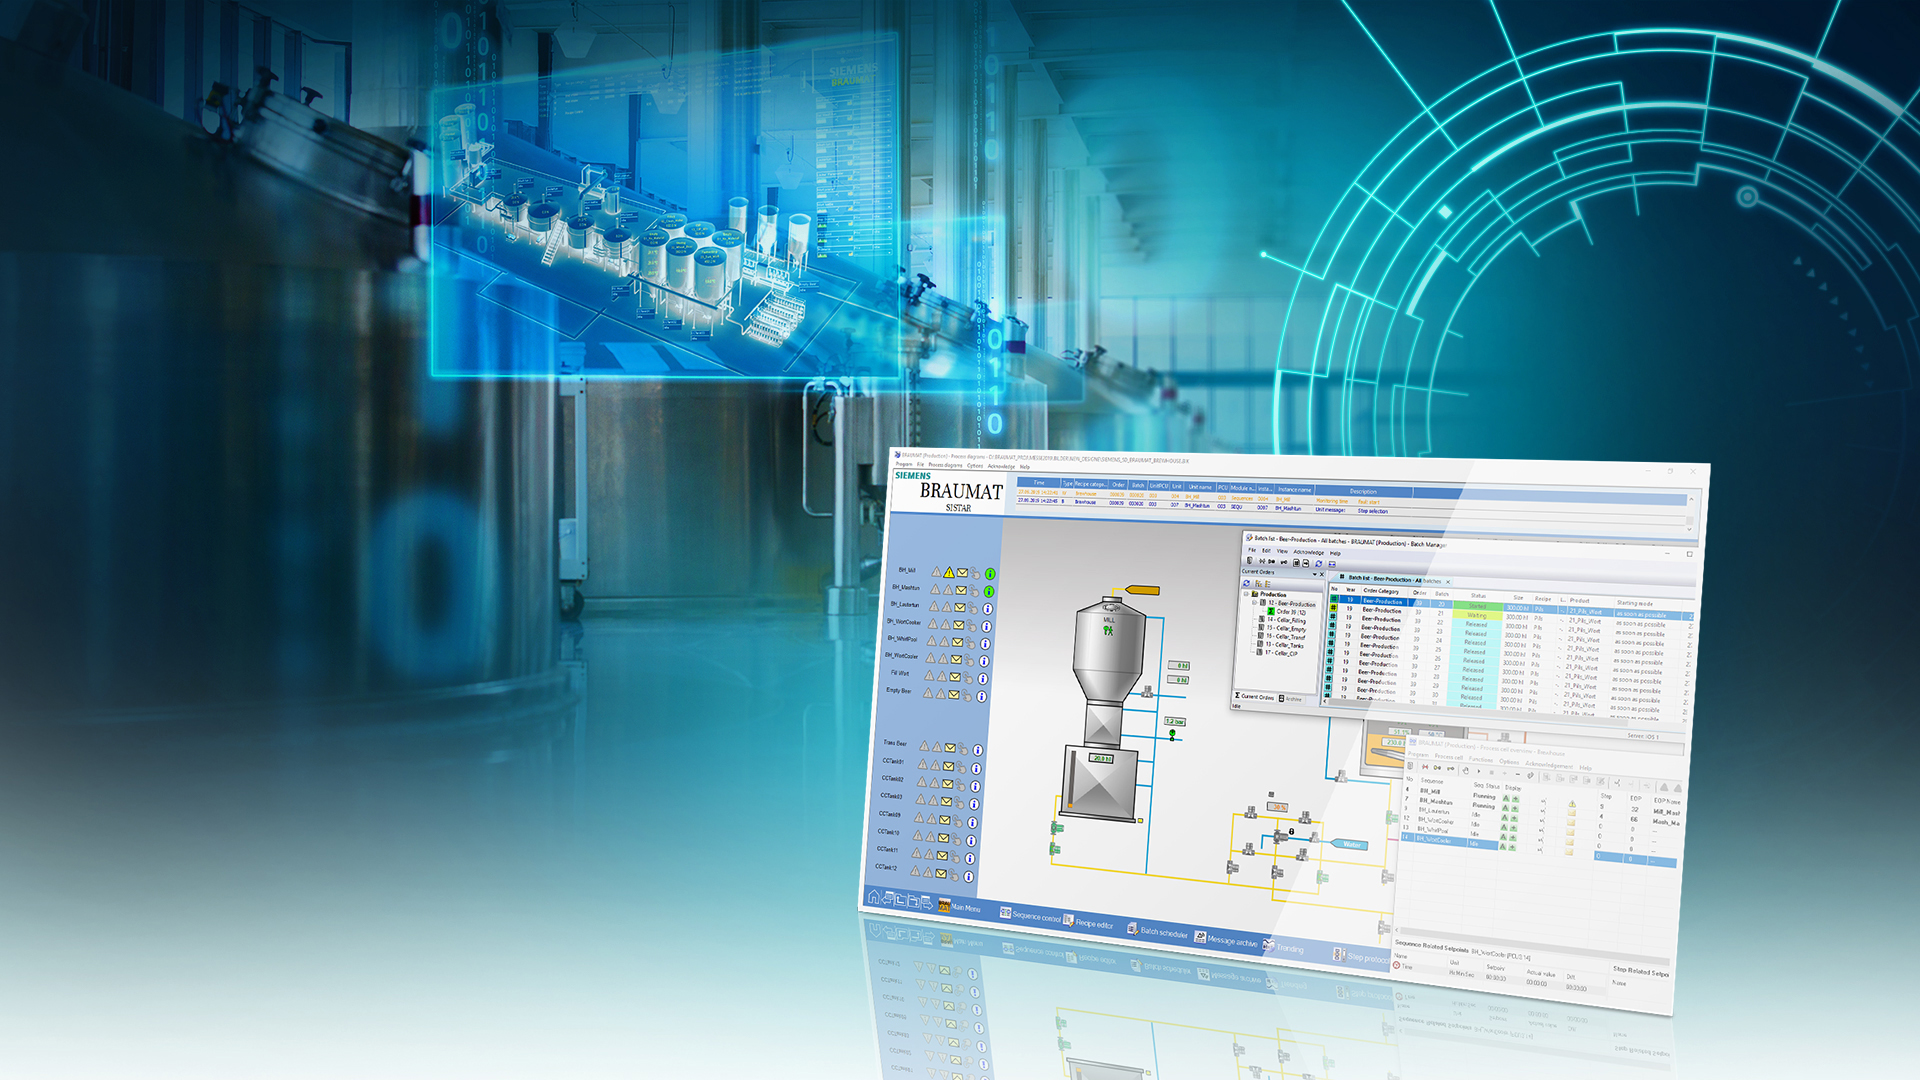 Siemens presents new version of Braumat process control system